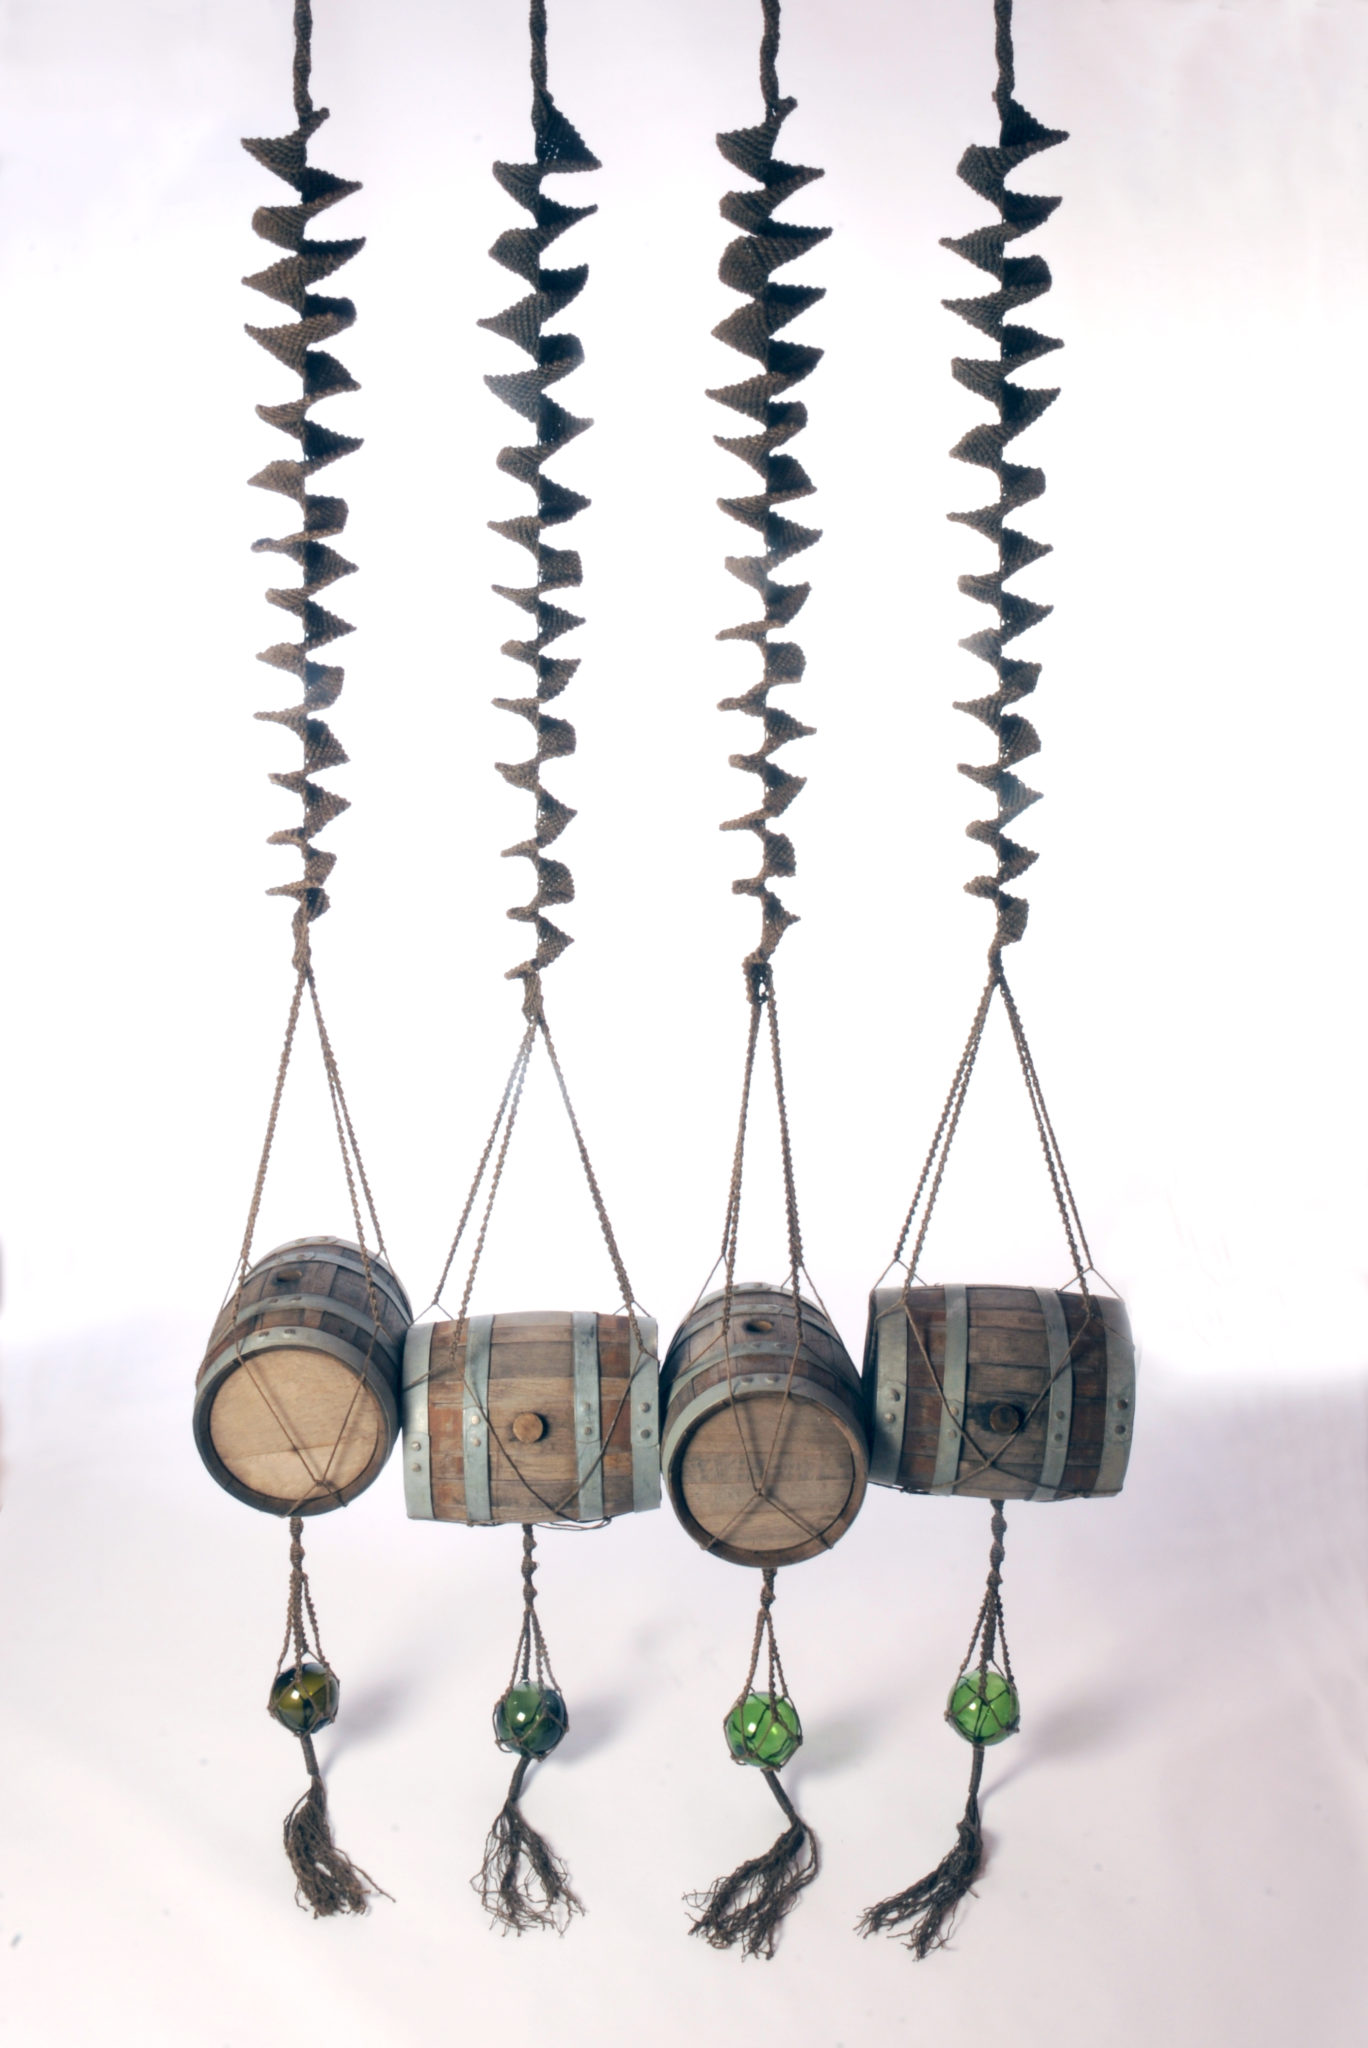 To the Four Corners of the Earth - 360 x 130 x 43 - 200 metres of hand knotted tarred marlin rope, four oak pin barrels - 2013